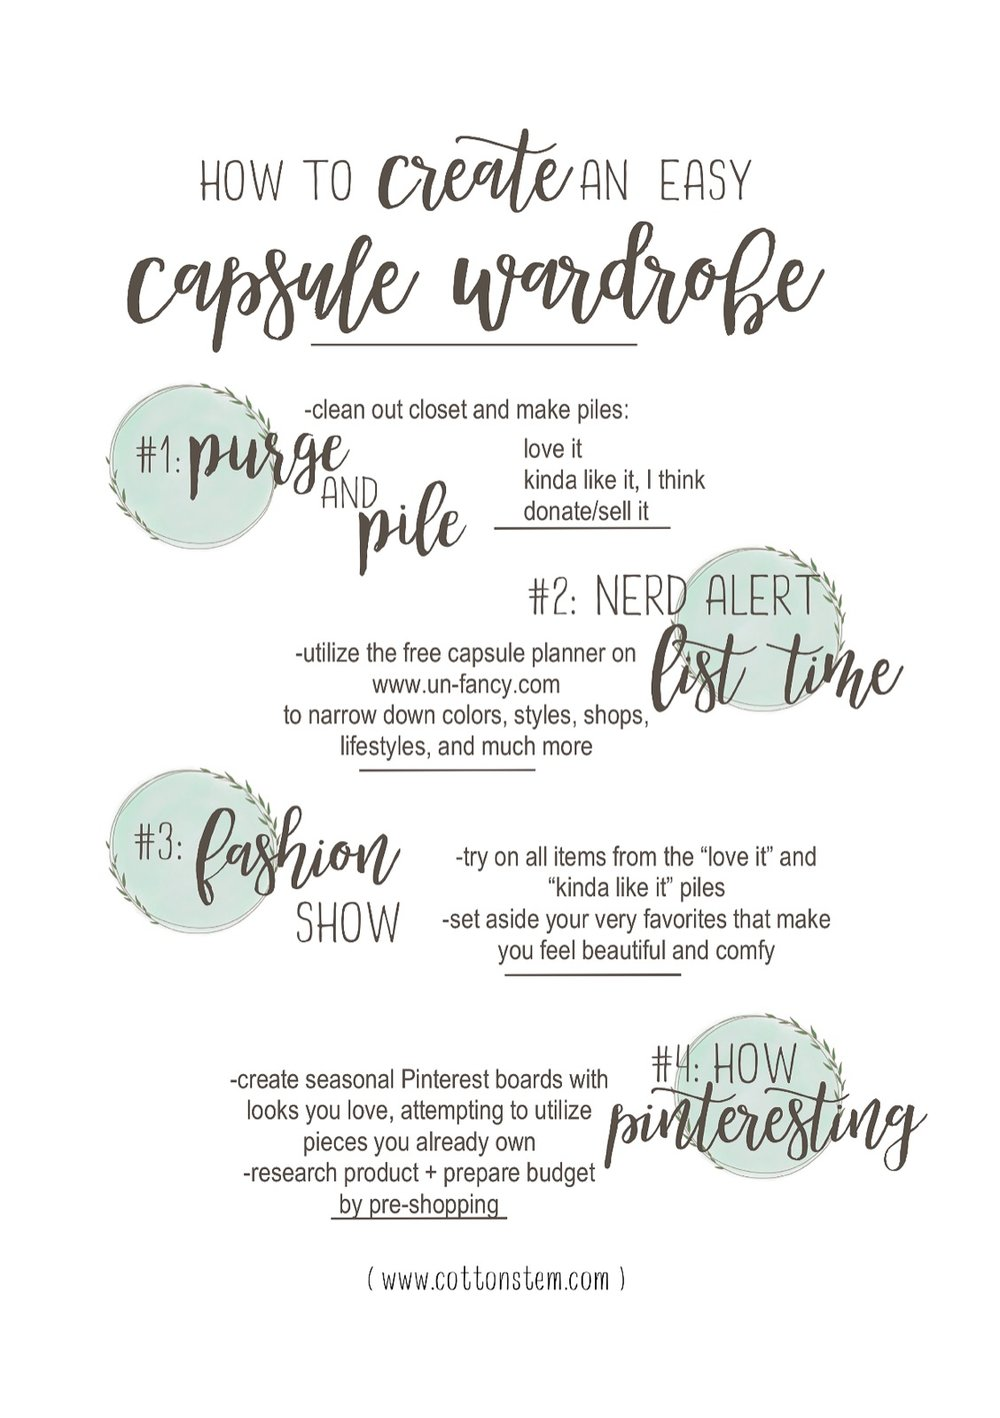 Cotton Stem Blog capsule wardrobe series how to 4.JPG